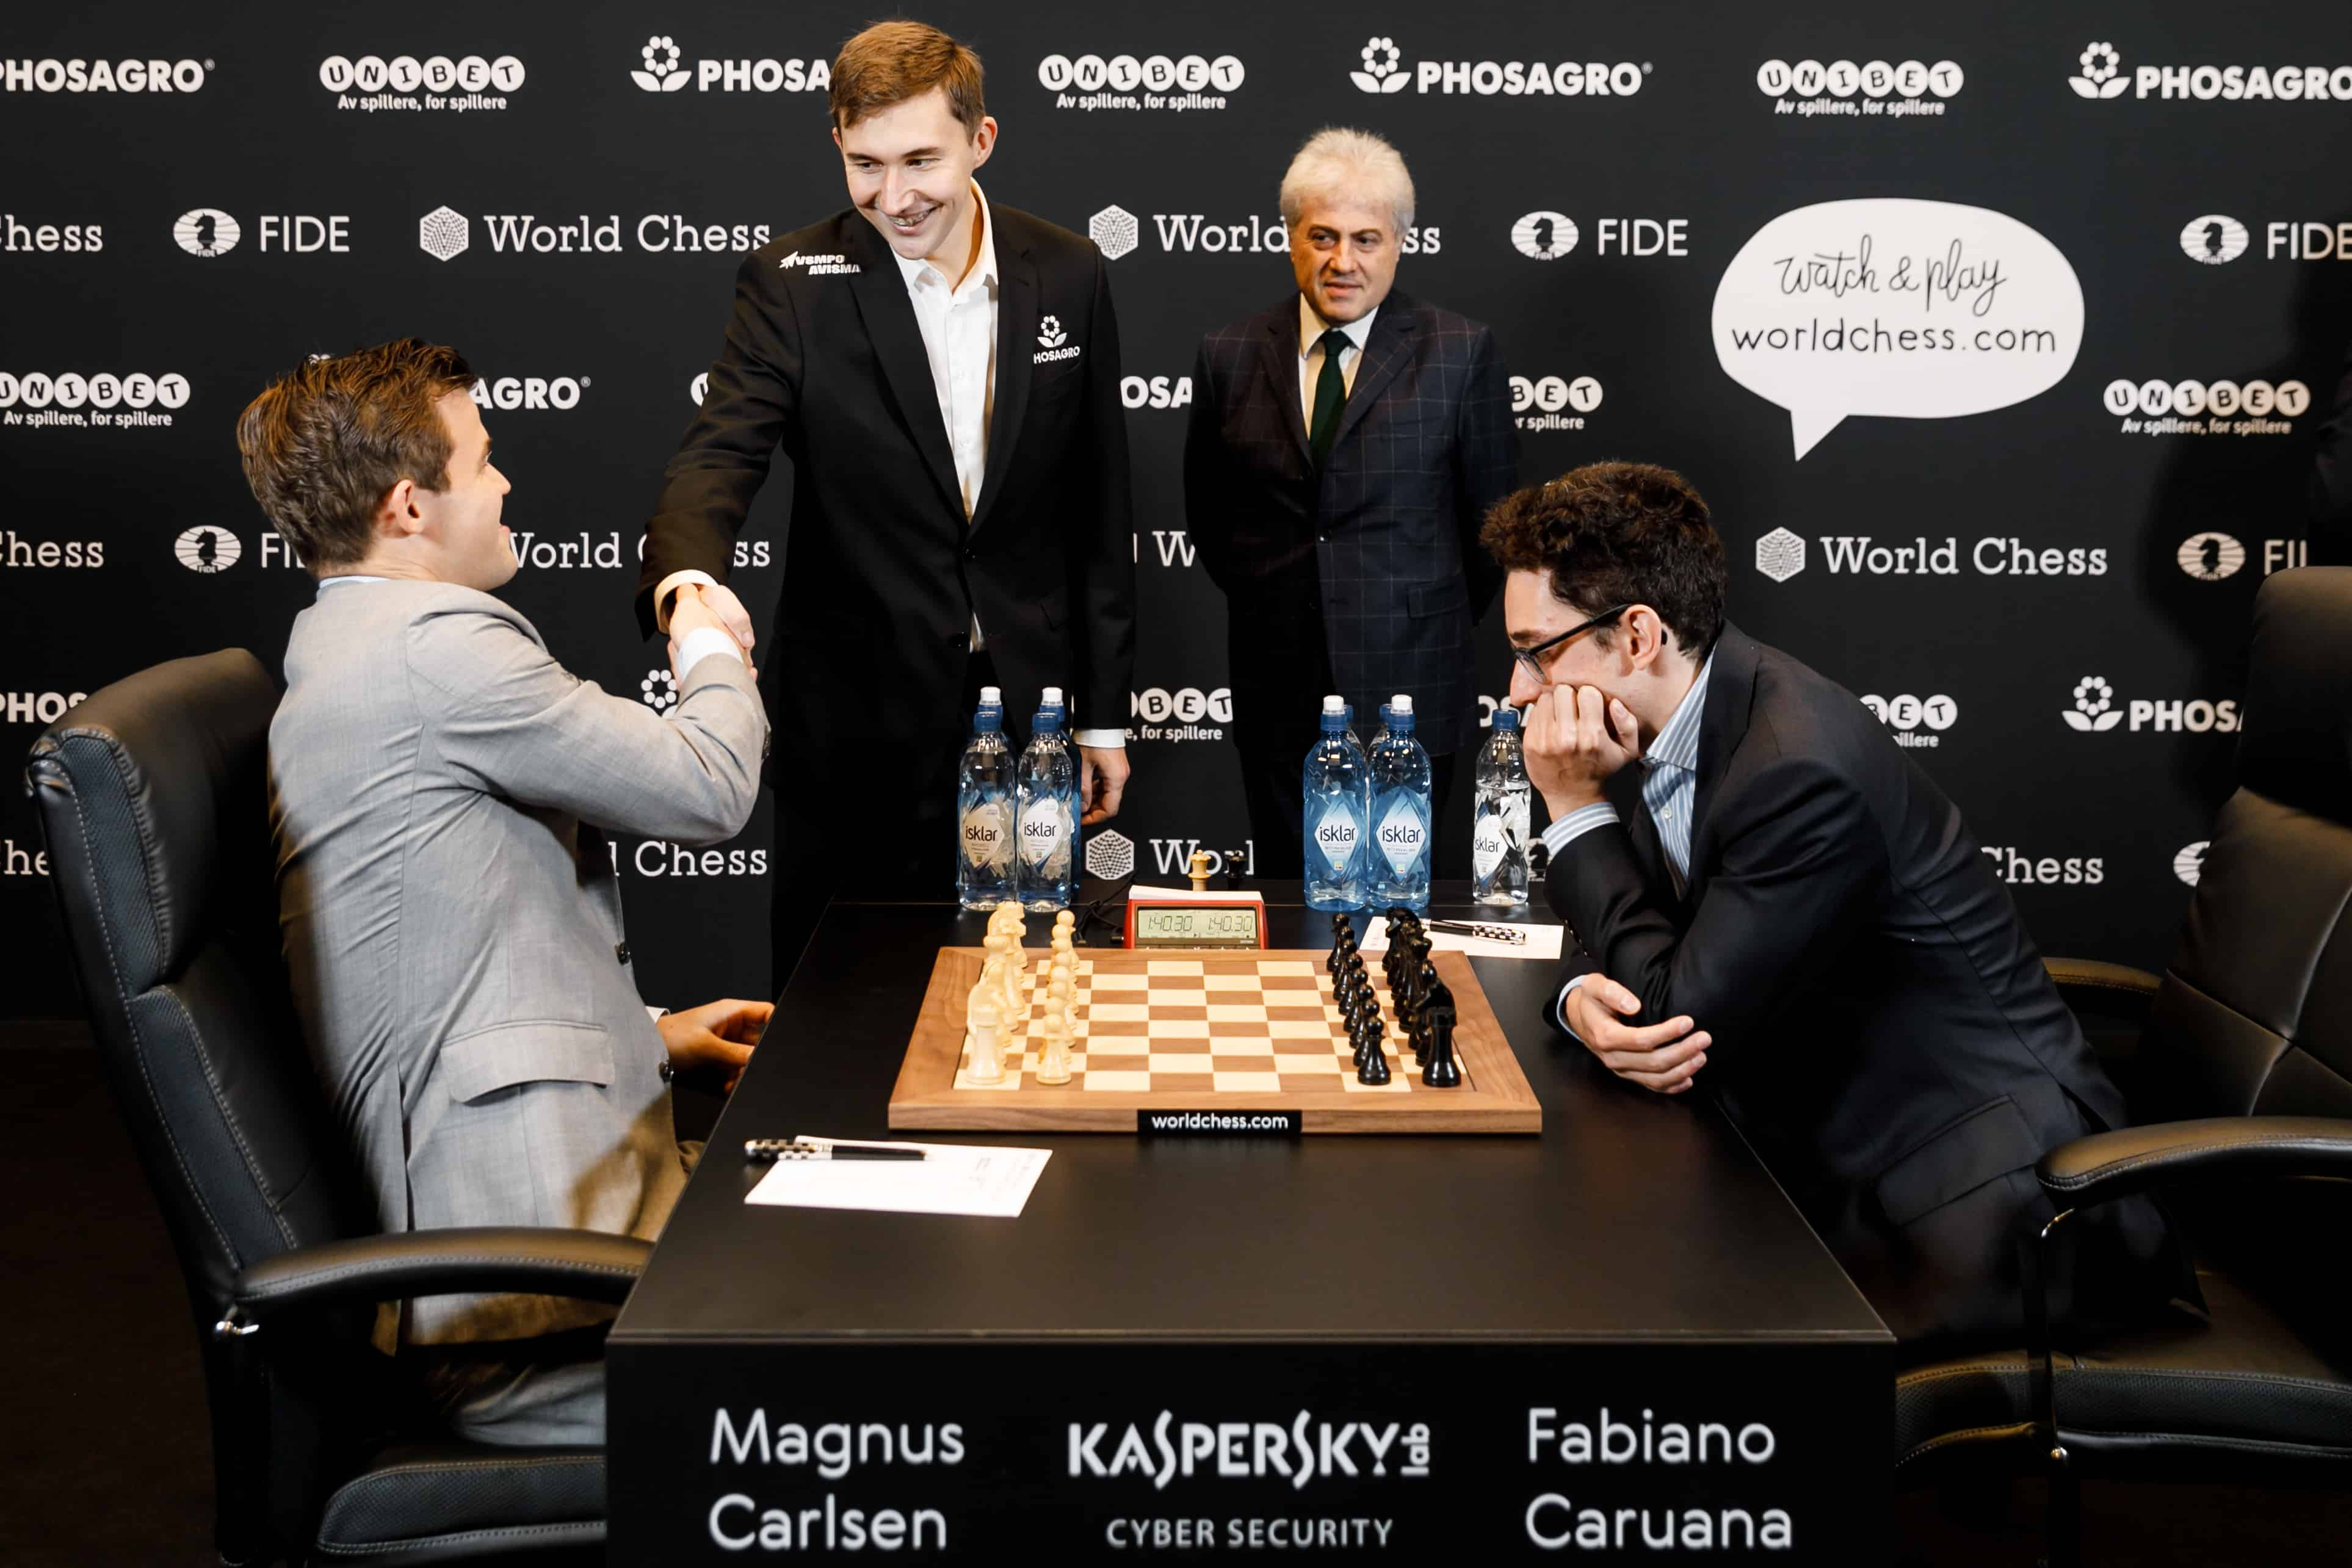 Sergey Karjakin made the ceremonial first move